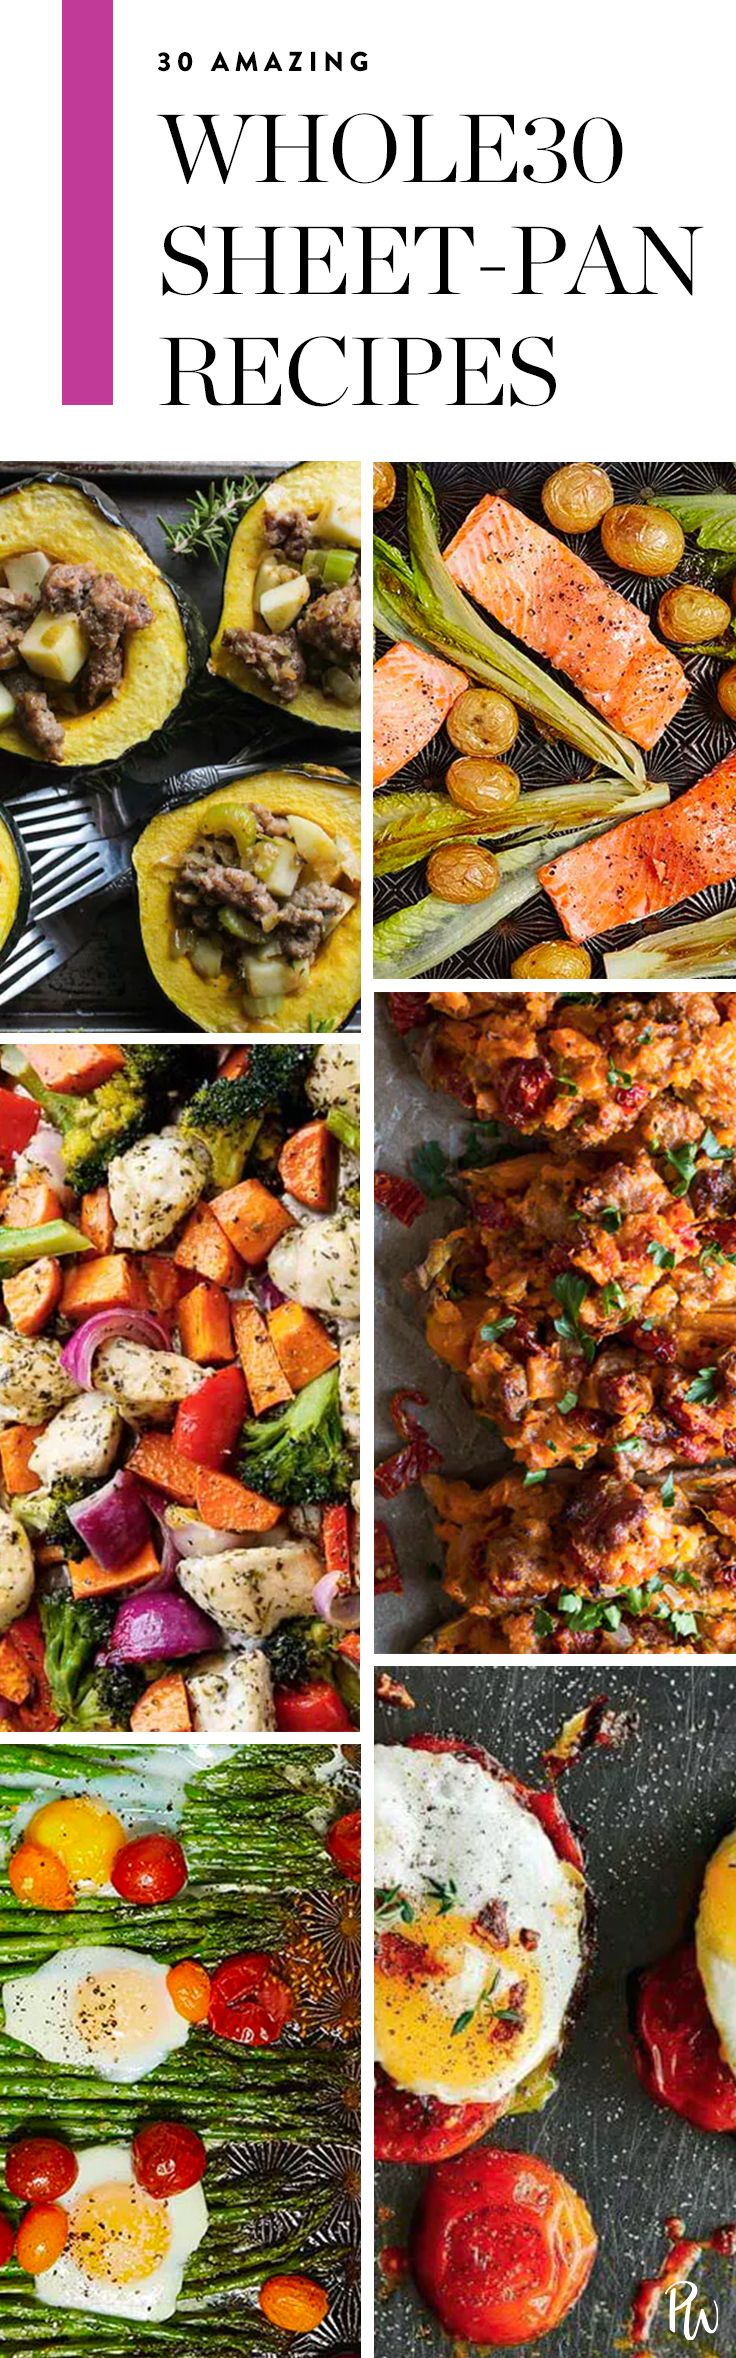 30 Whole30 Sheet-Pan Recipes to Add to Your Arsenal via @PureWow via @PureWow